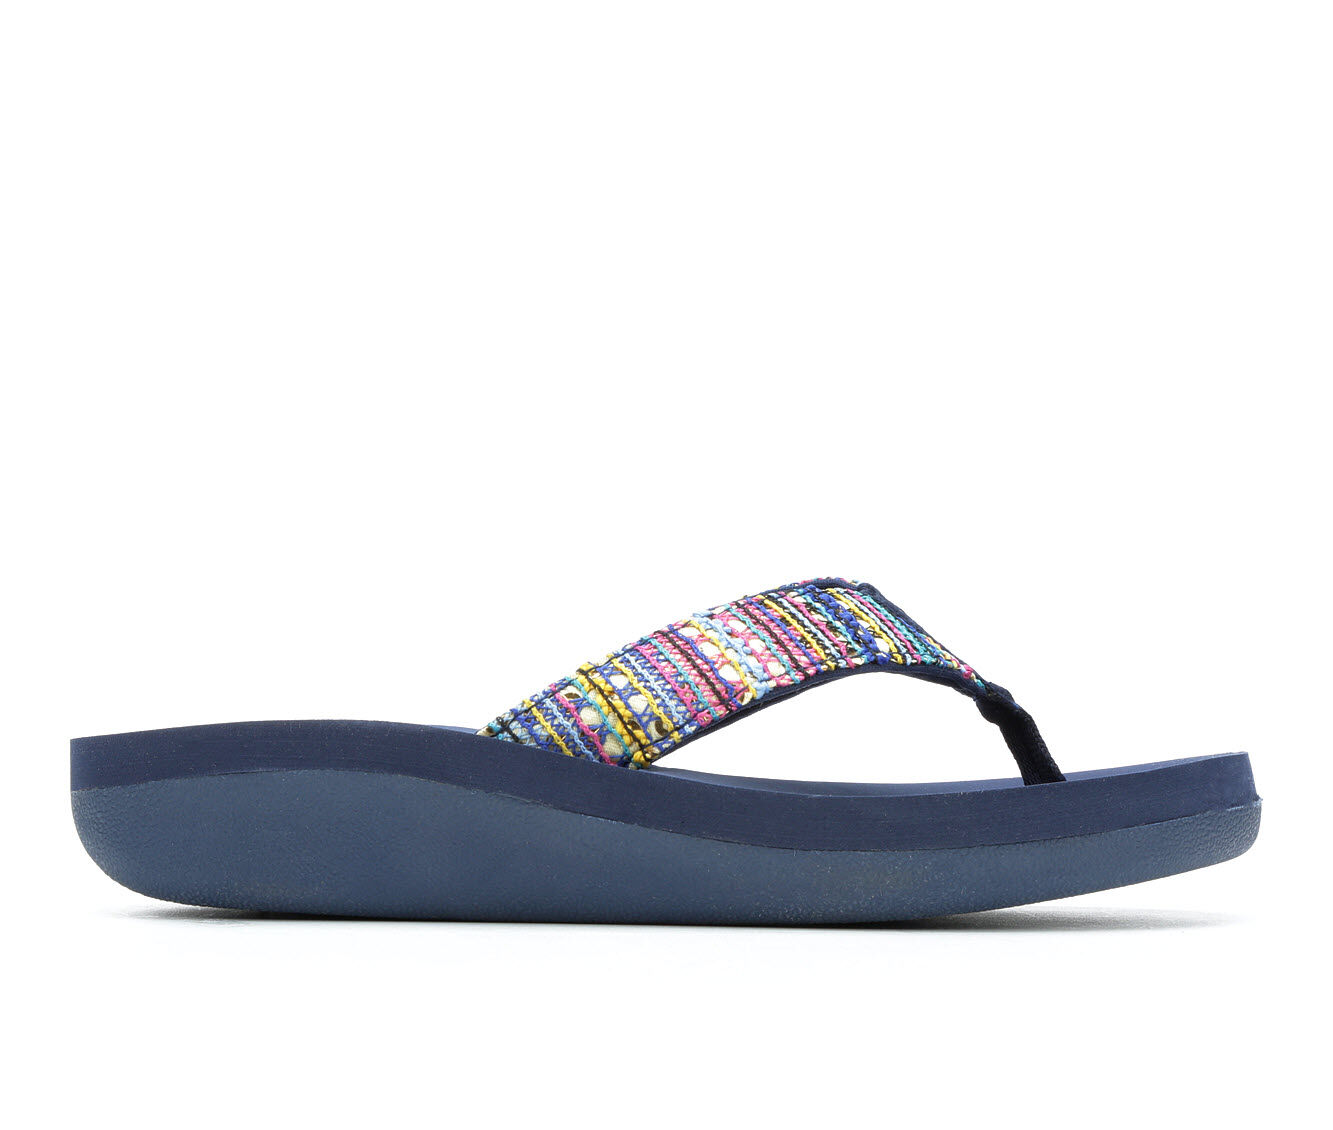 Women's Volatile Redfern Sandals Navy Multi